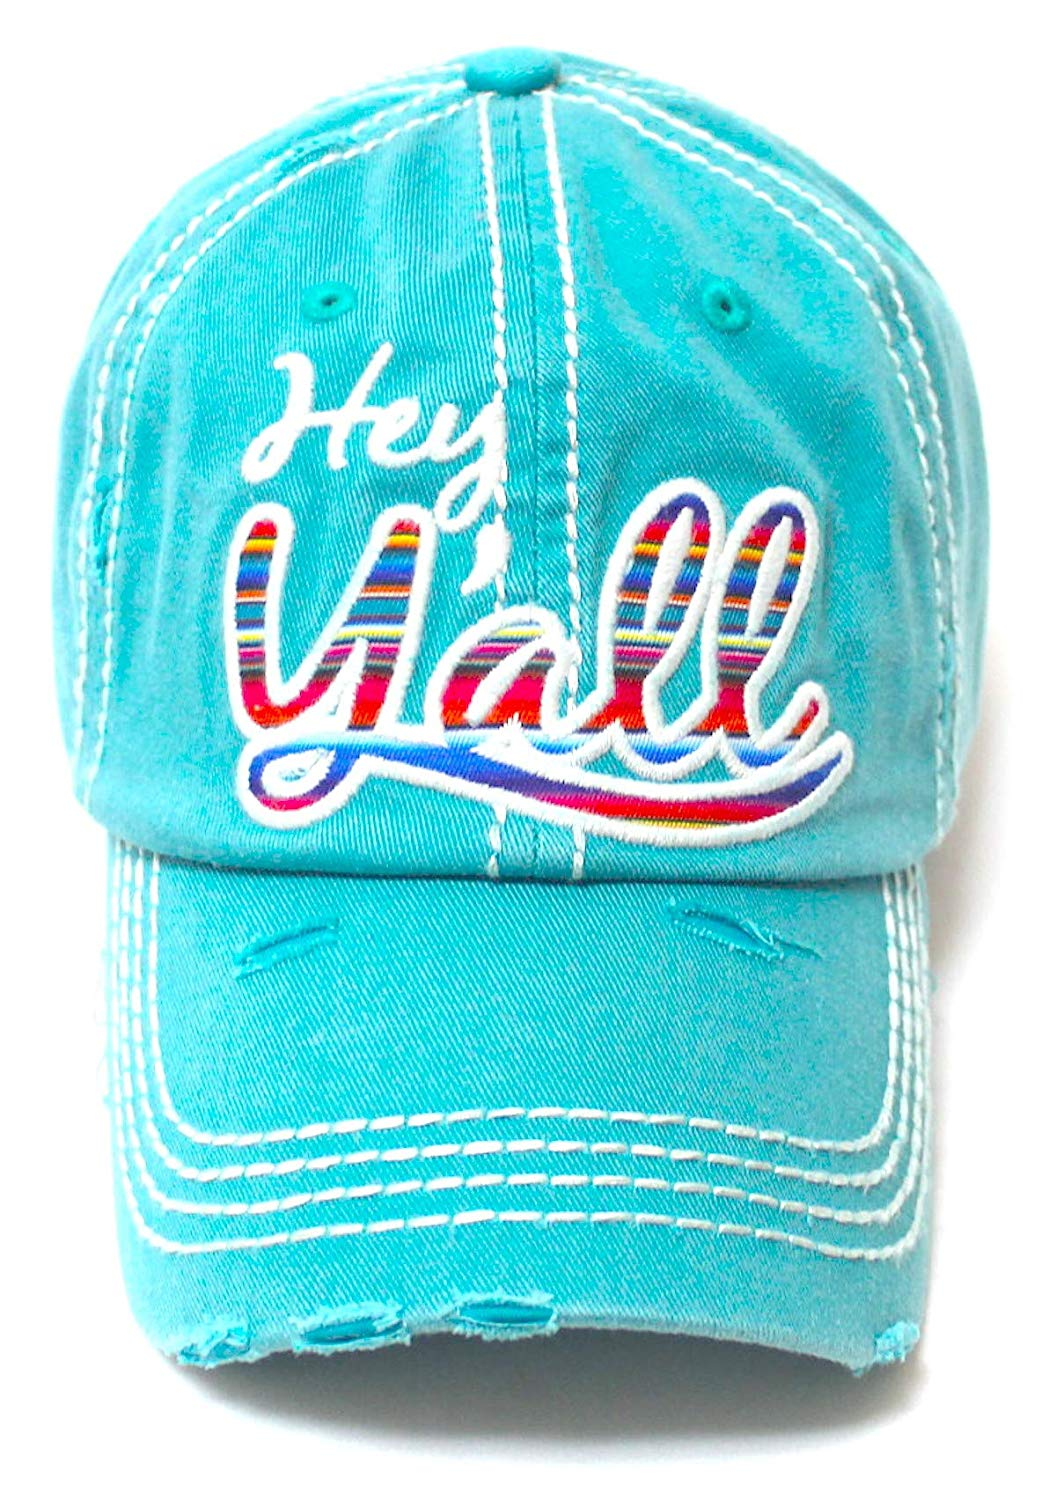 Hey Y'all Serape Monogram Embroidery Adjustable Hat, Vintage Turquoise